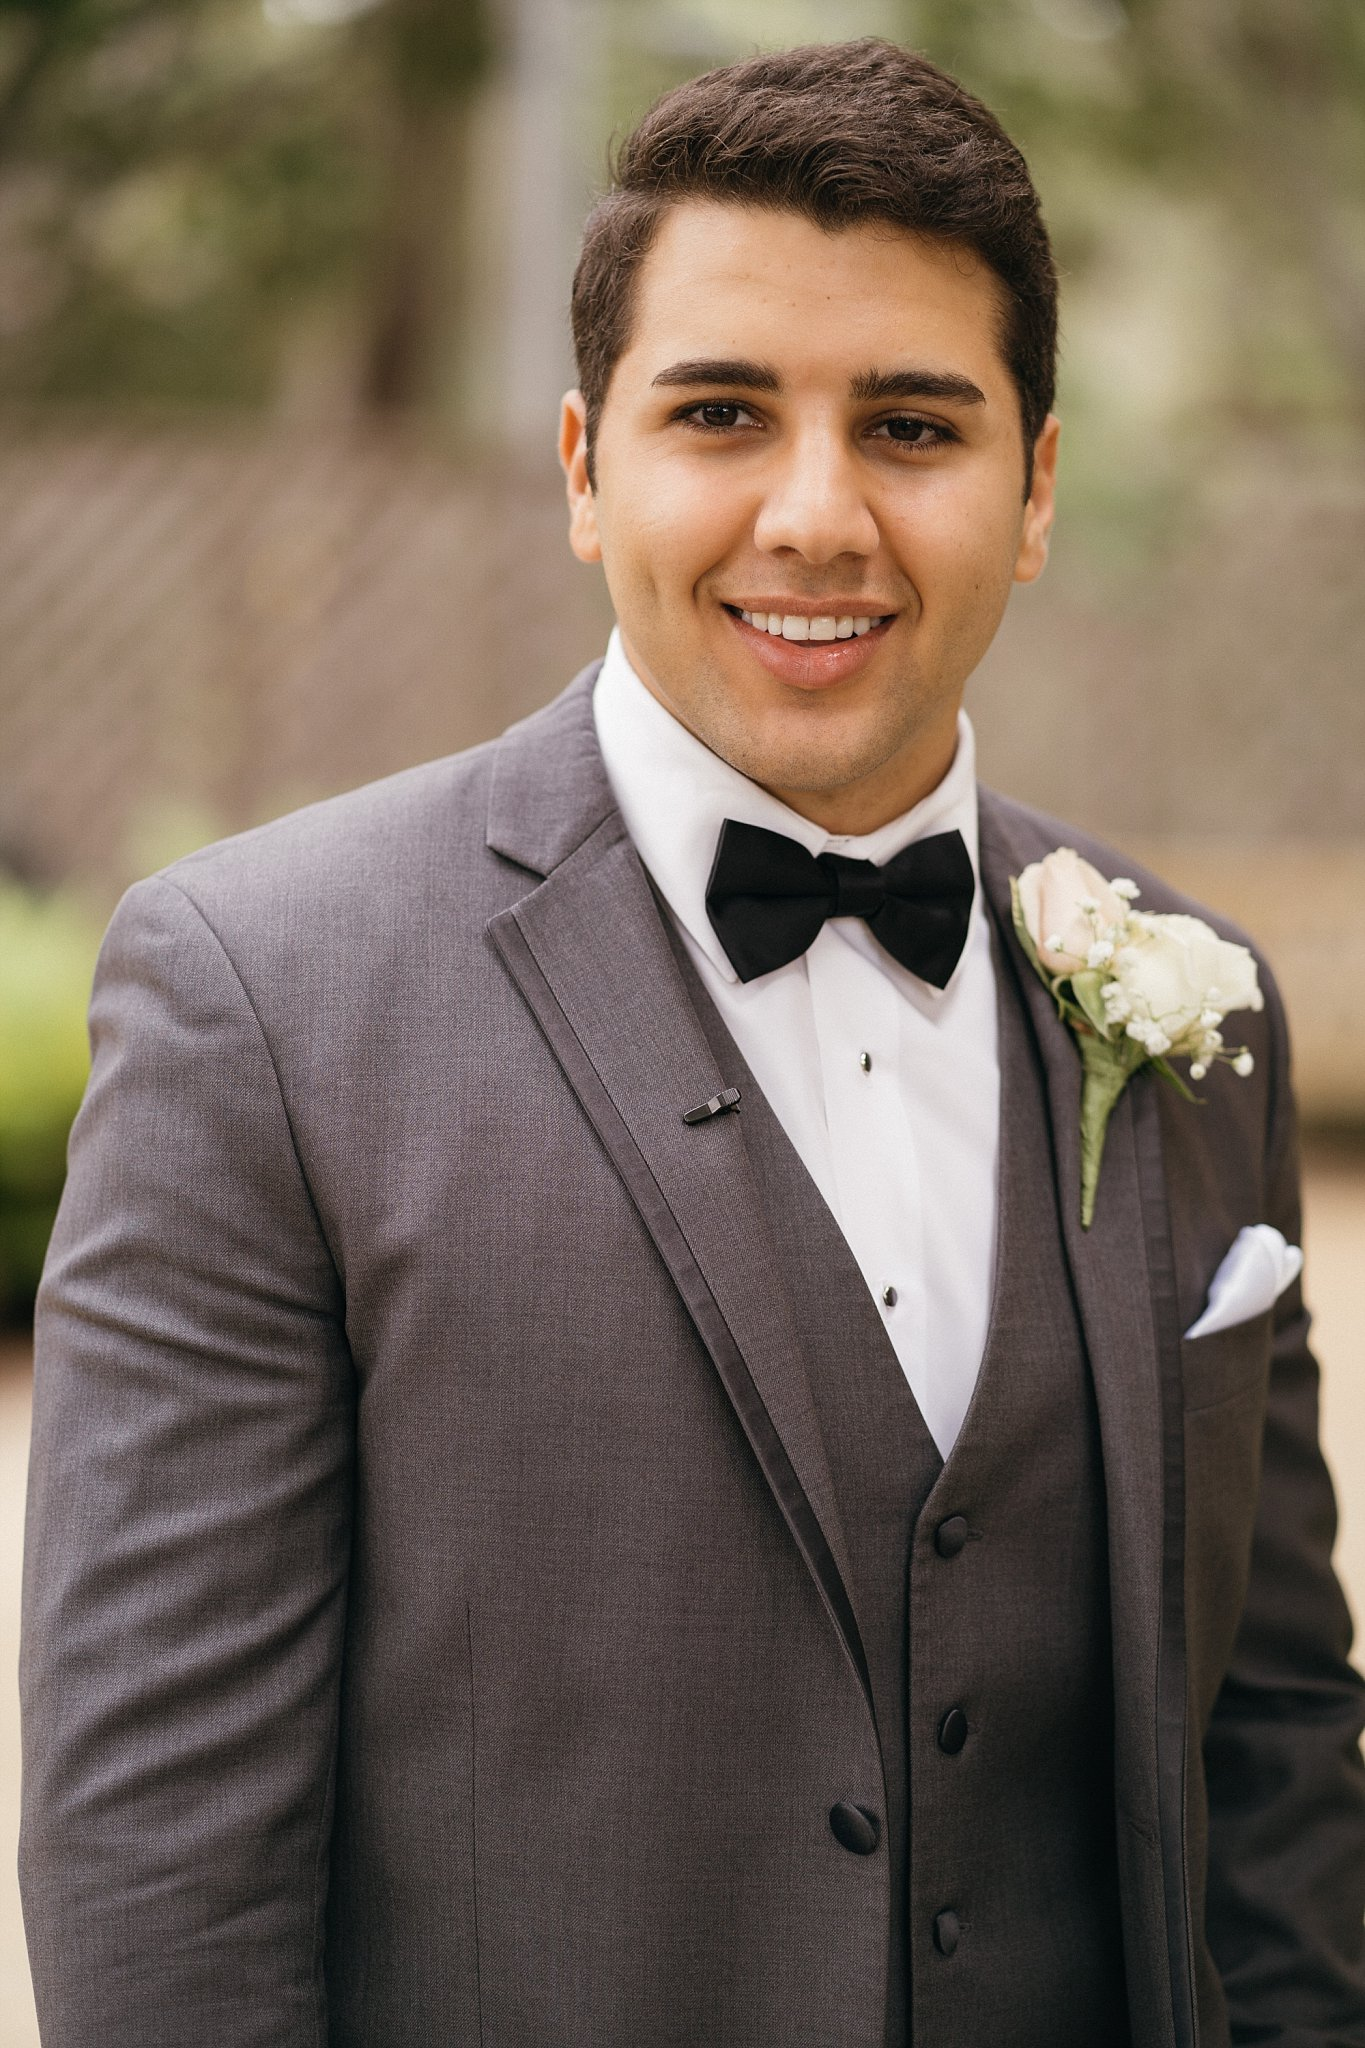 monterey-wedding-photographer-pebble-beach-church-in-the-forest-wedding-bride-groom-morgan-anthony_0005.jpg